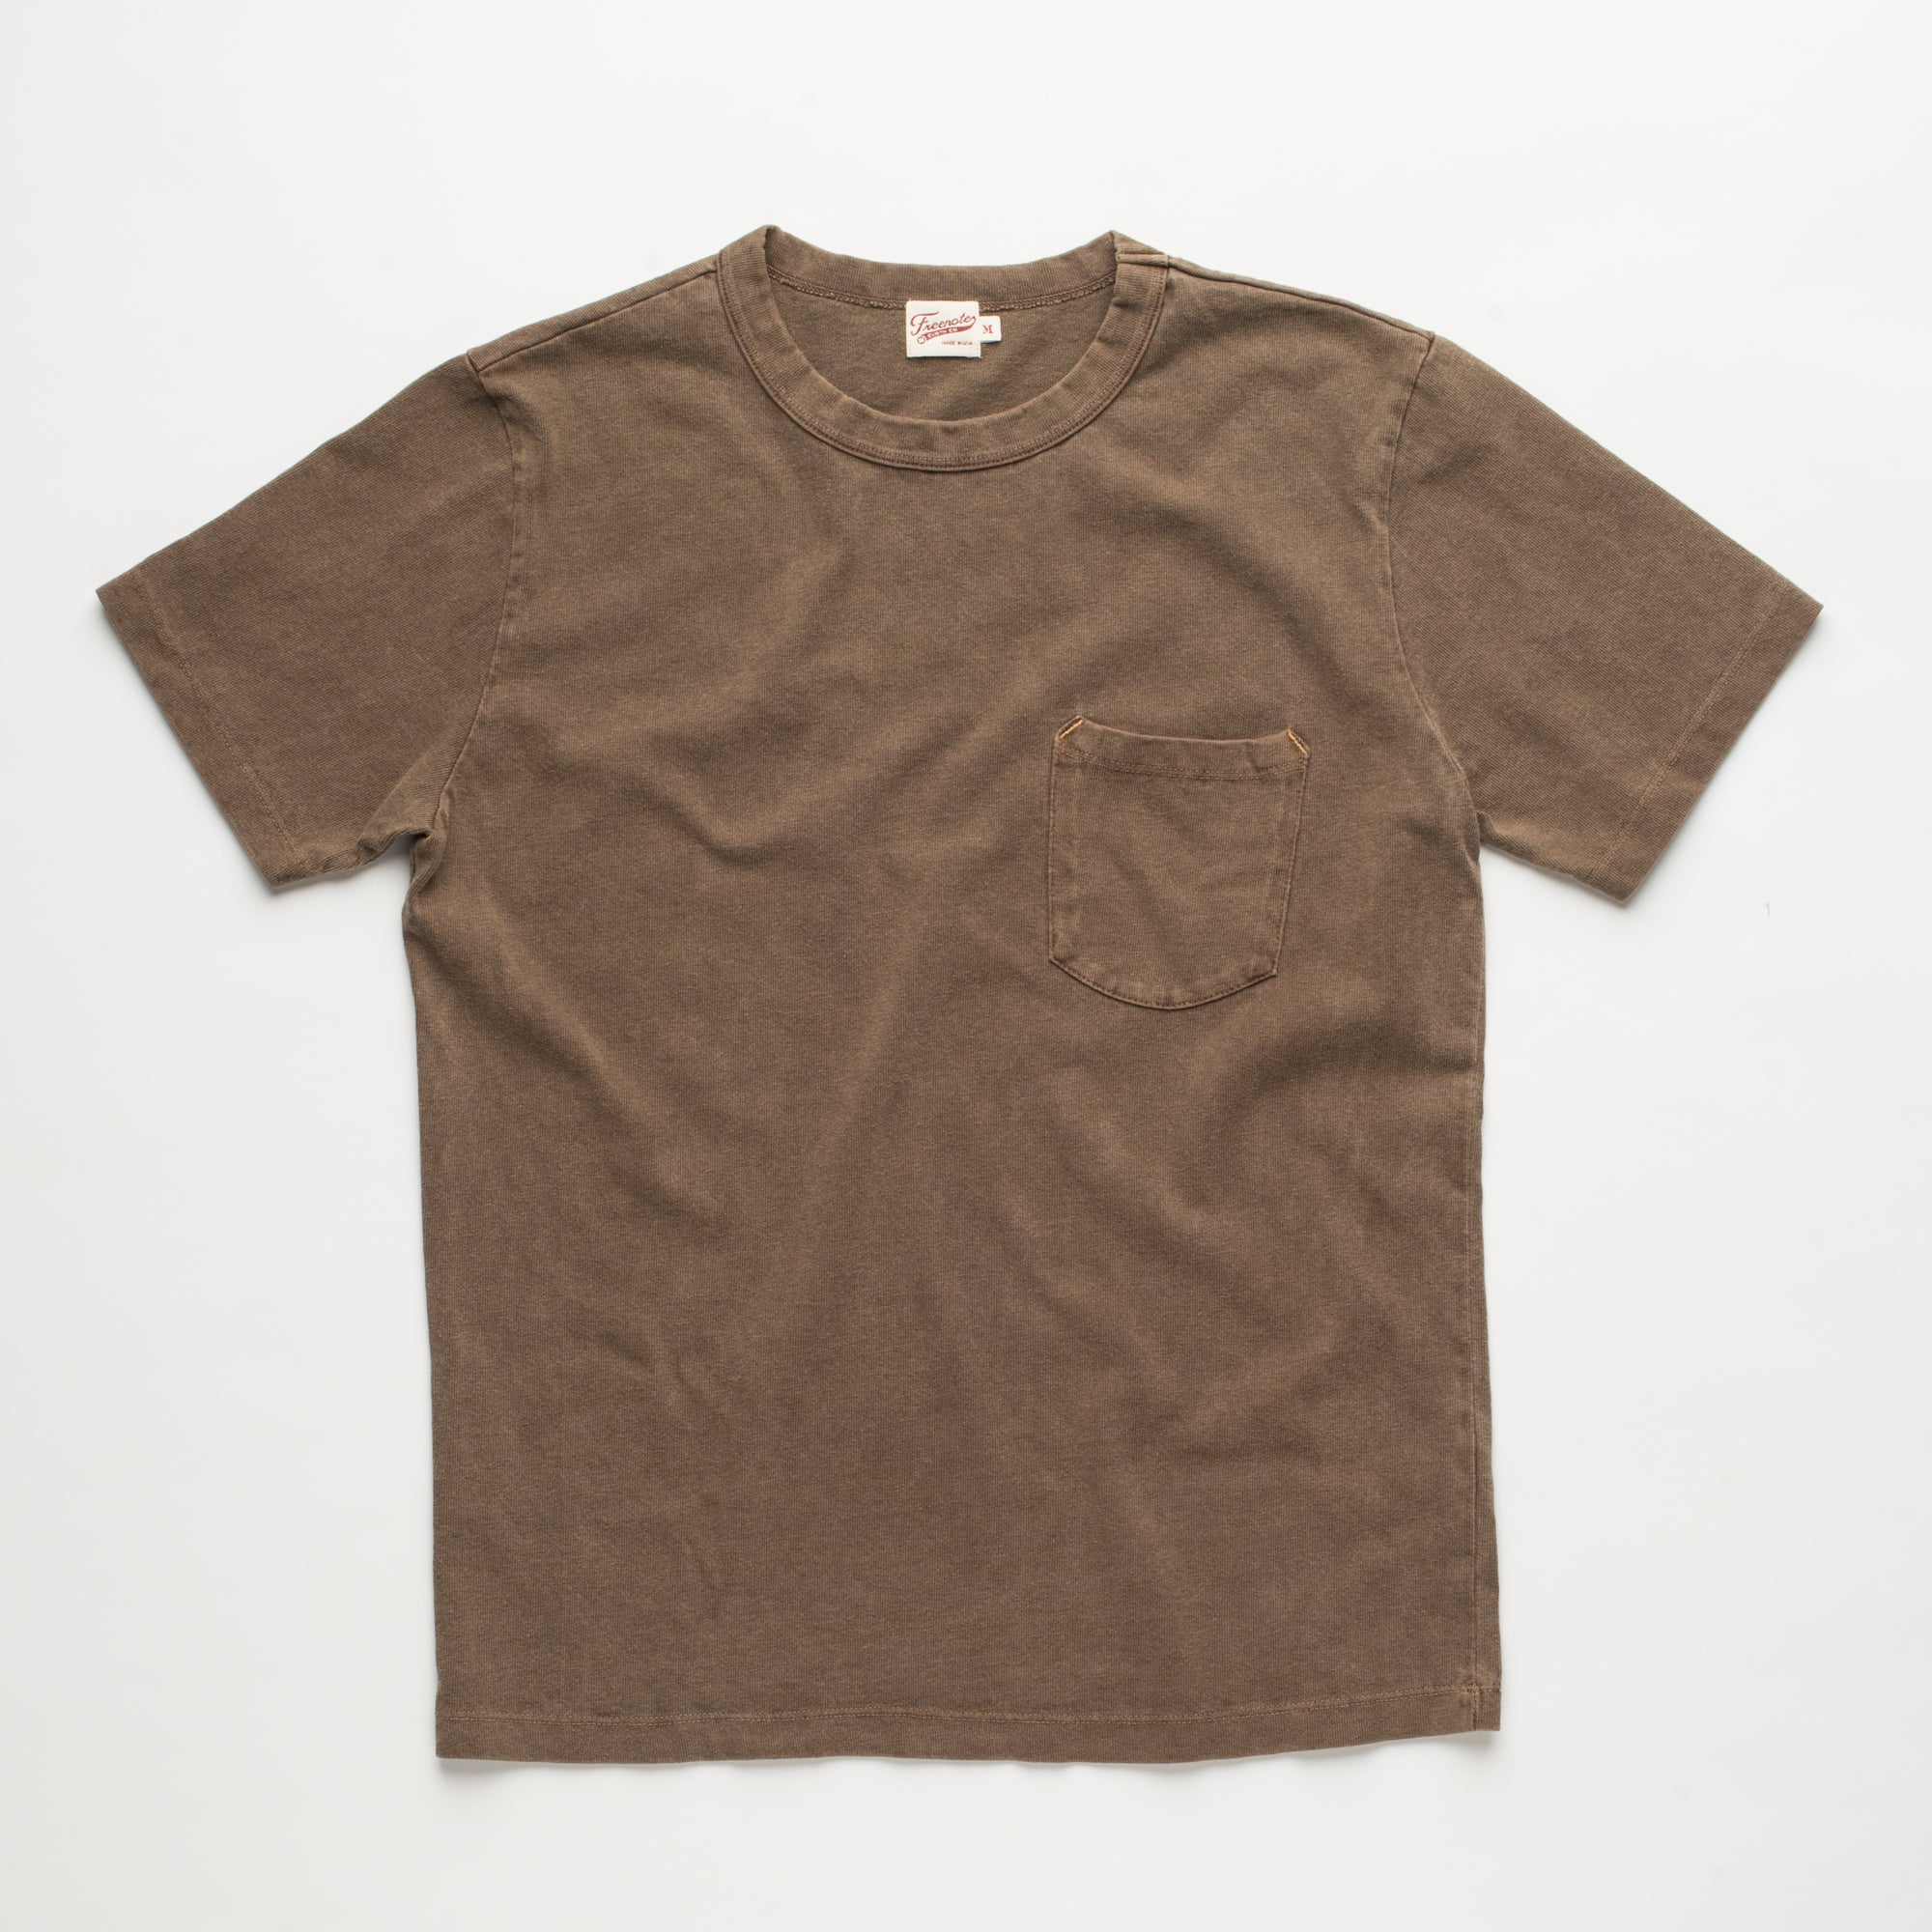 13 OUNCE T-SHIRT DARK OLIVE Front